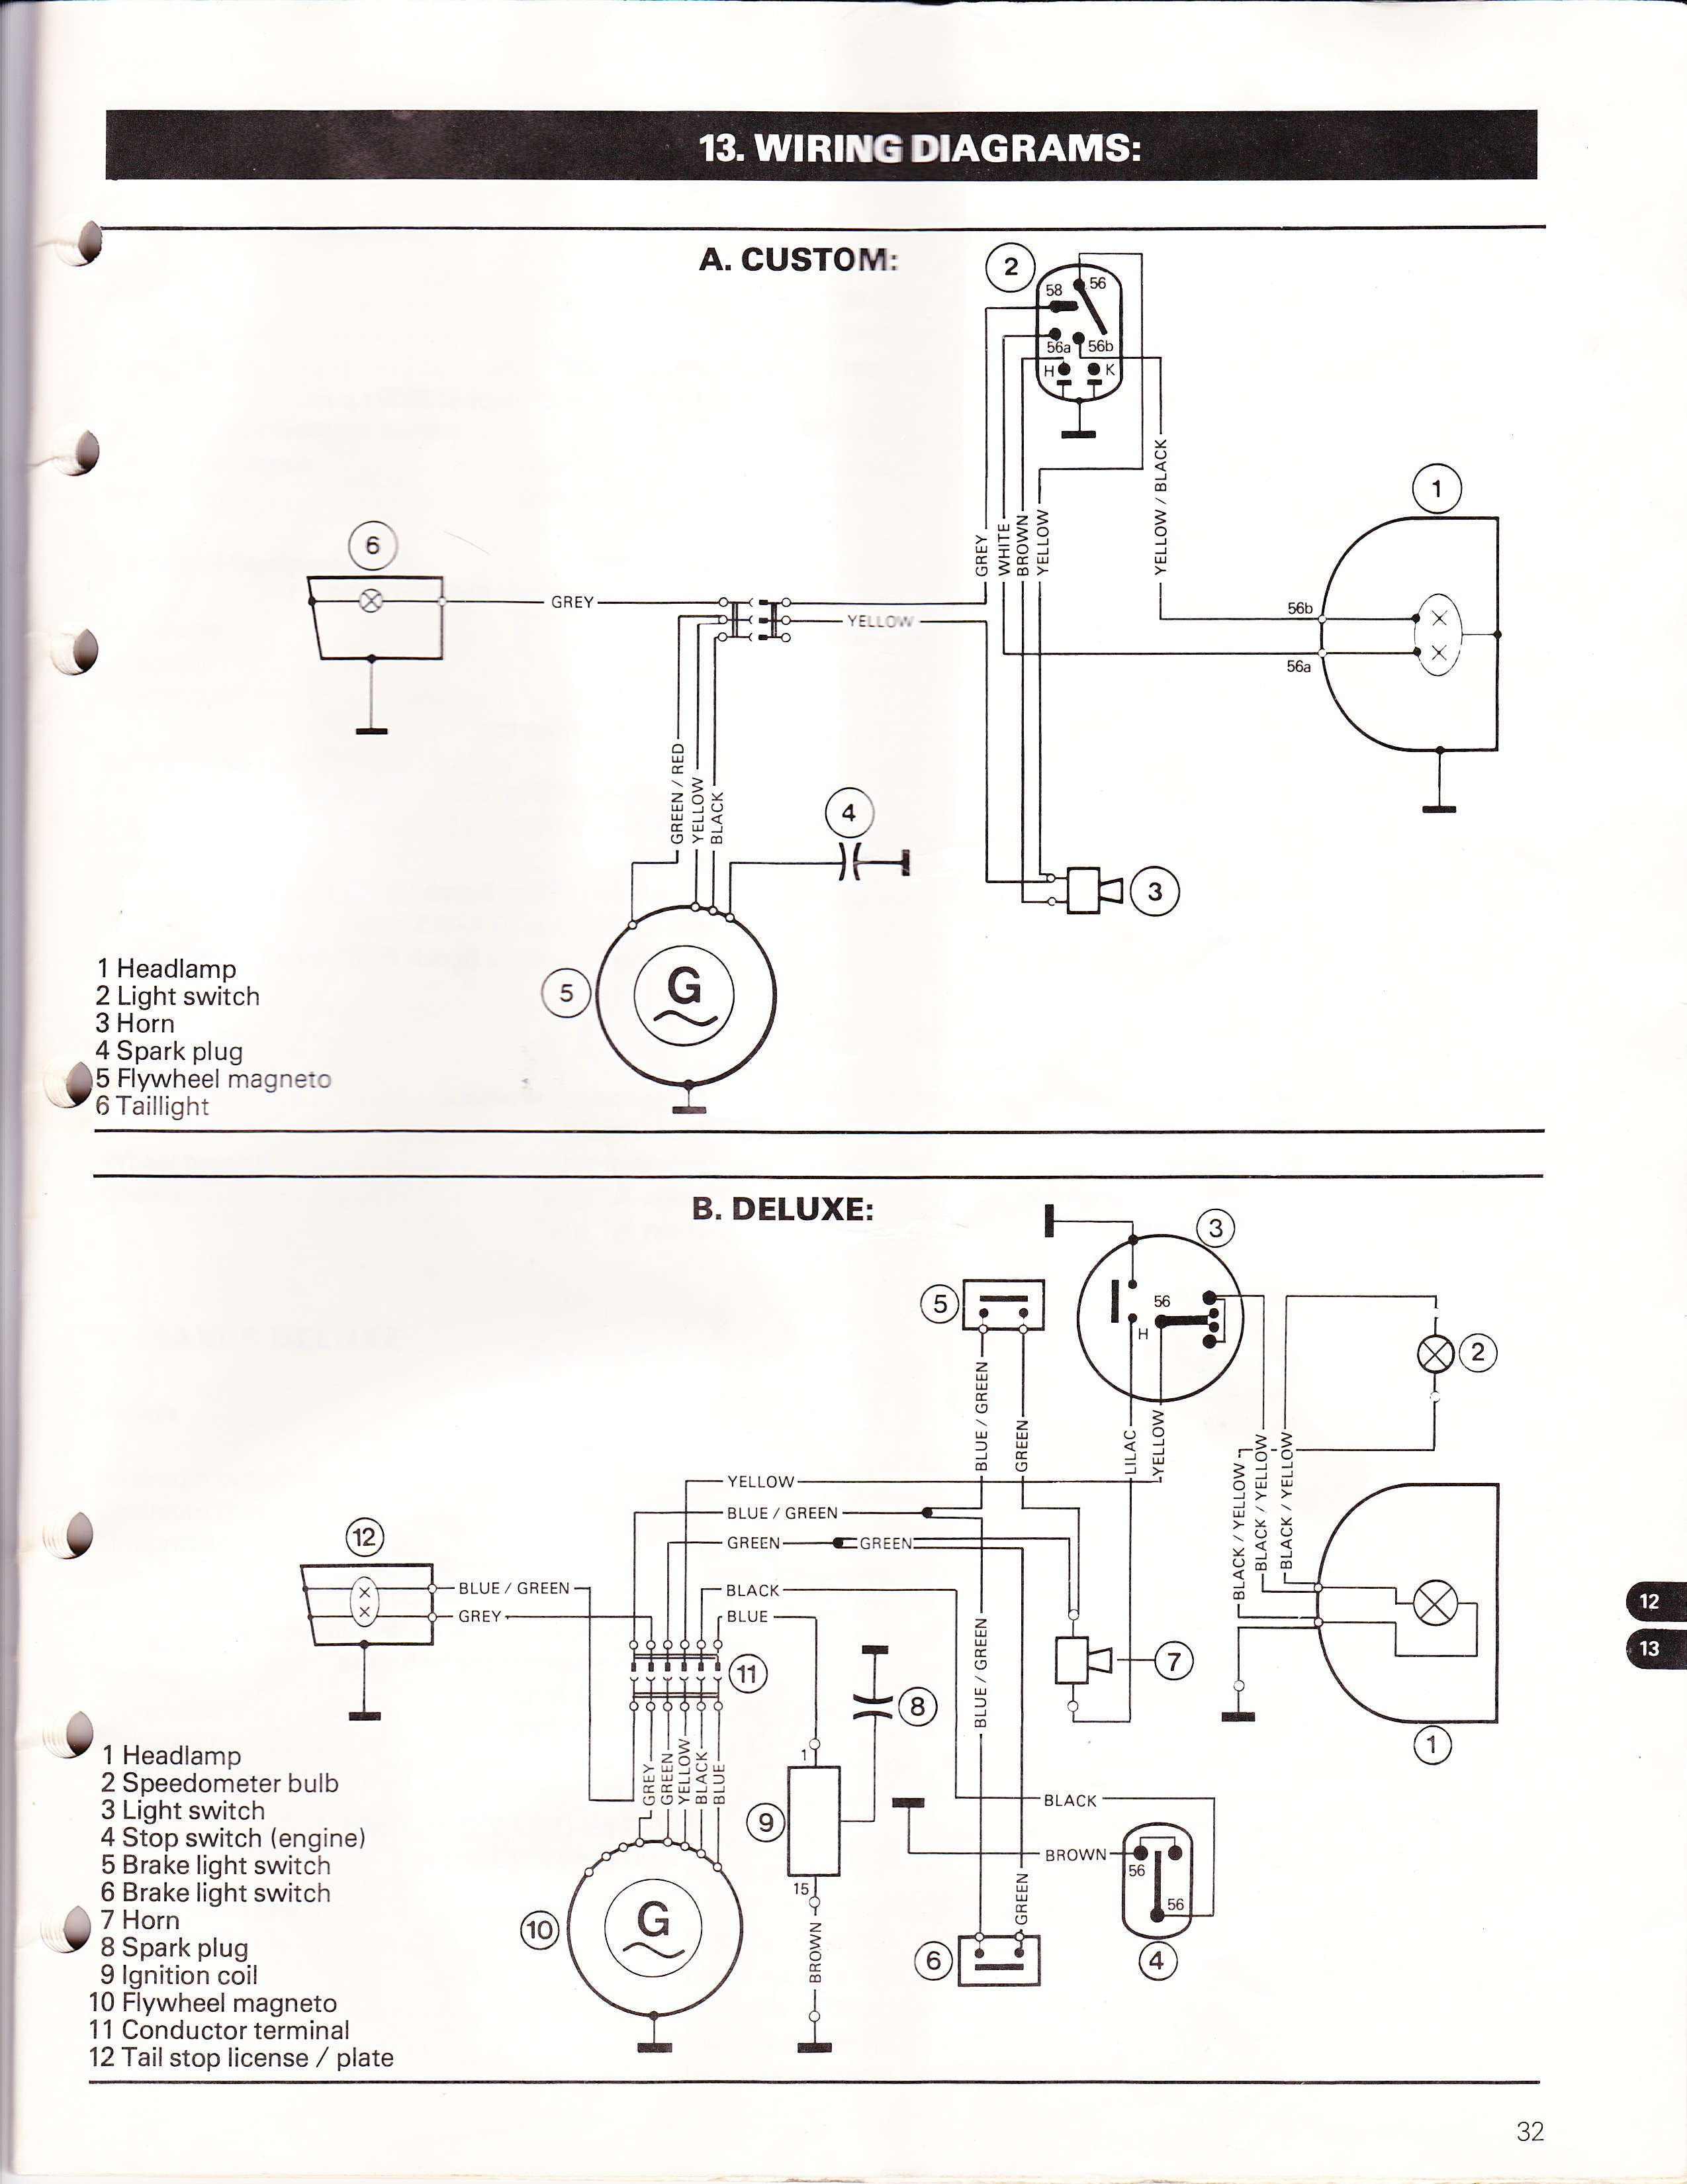 1975 Canadian Puch Maxi Wiring.jpg